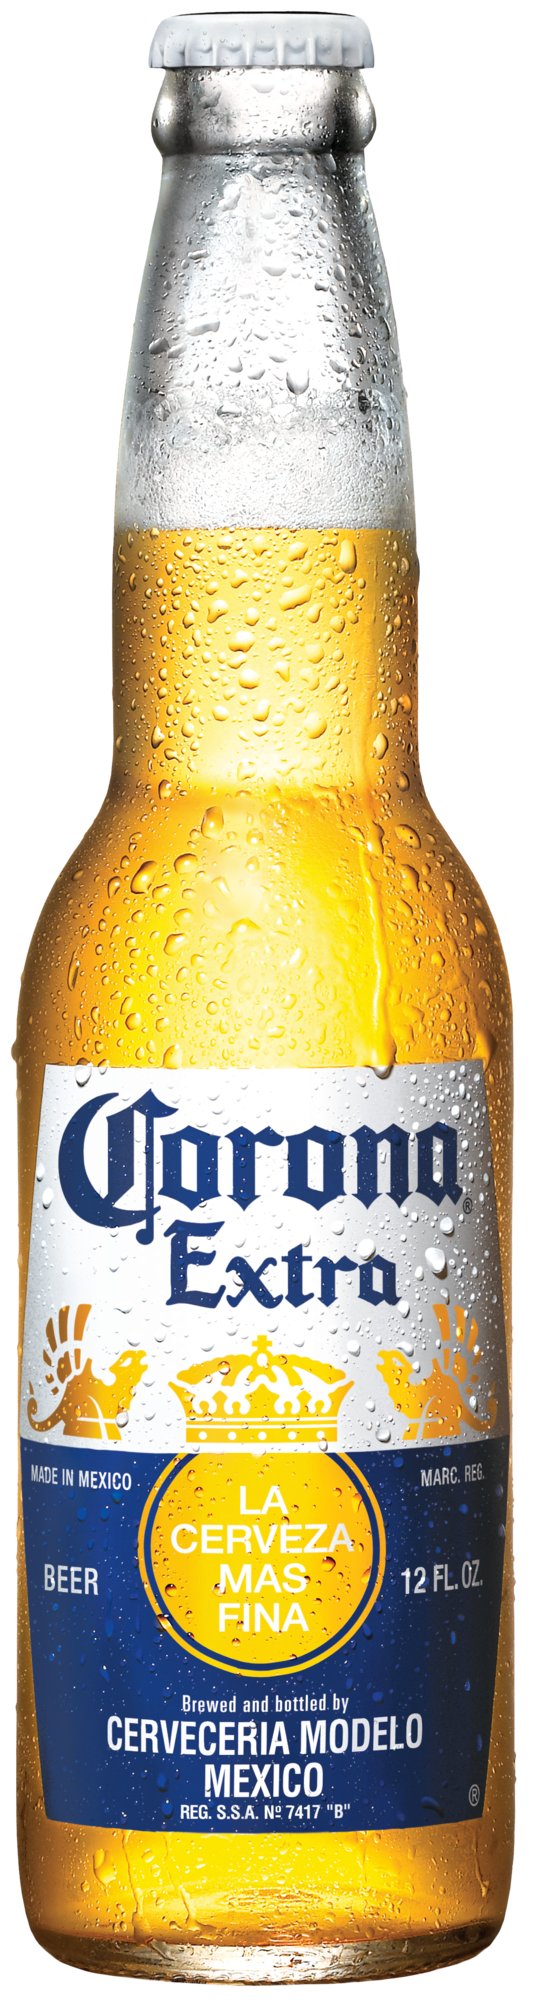 Corona Extra Mexican Import Beer 4.6% ABV